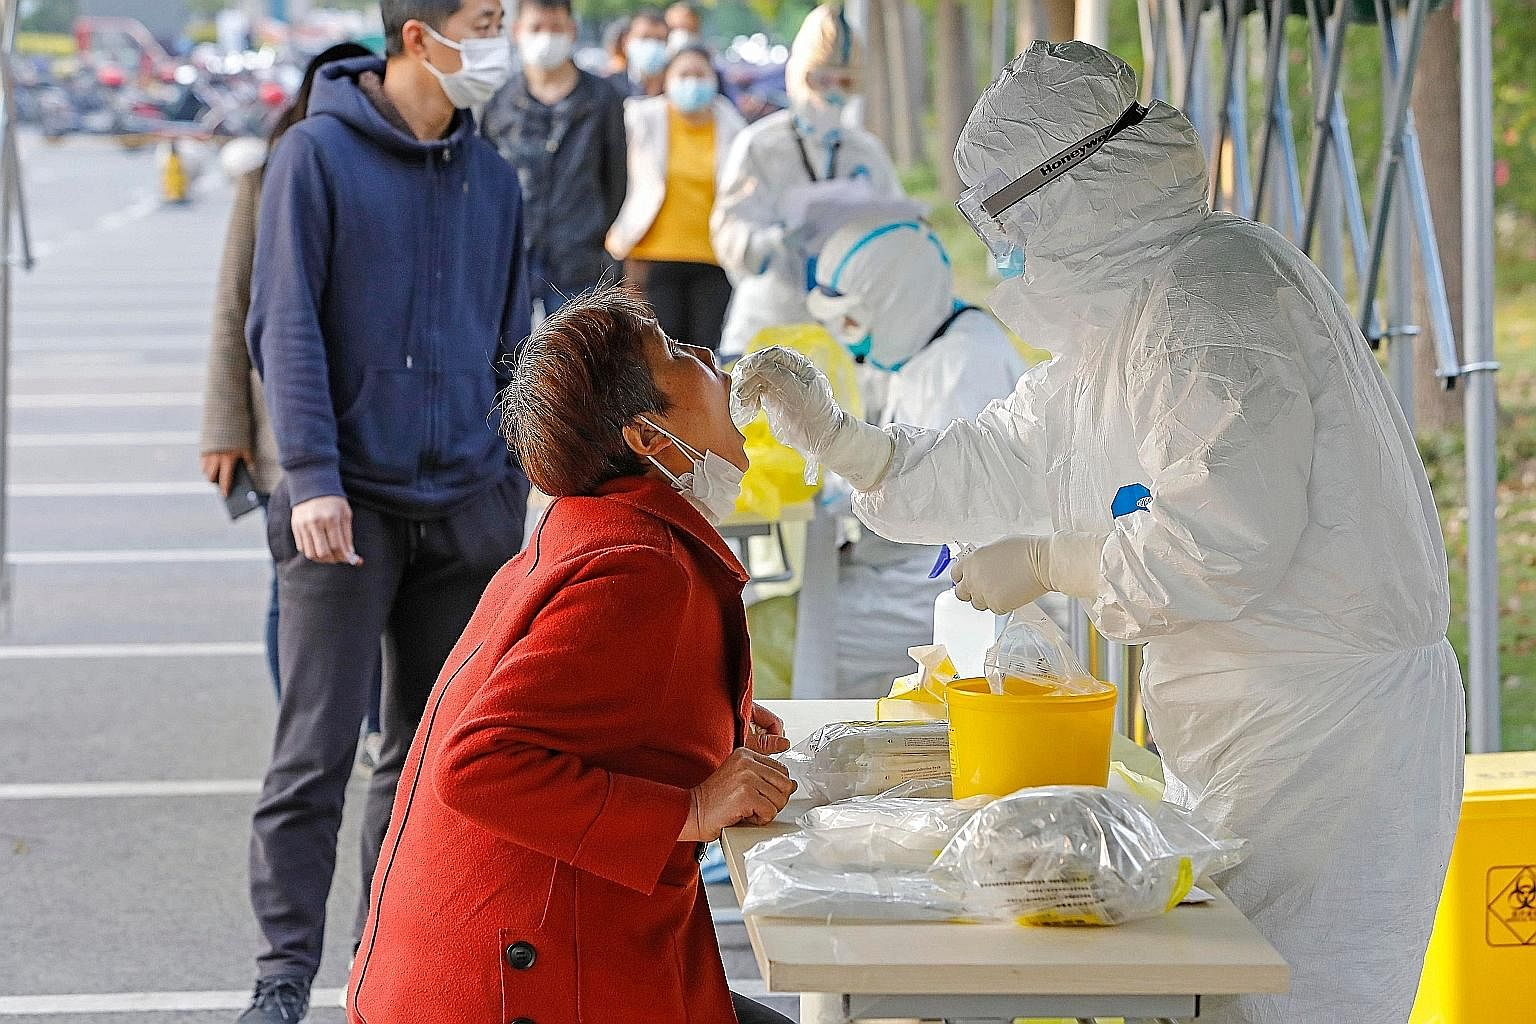 A woman getting tested for the coronavirus in Shanghai last month. Much of how EU-China relations will evolve will depend on whether the EU comes out of the Covid-19 crisis stronger or weaker, and whether US President Donald Trump will be re-elected,